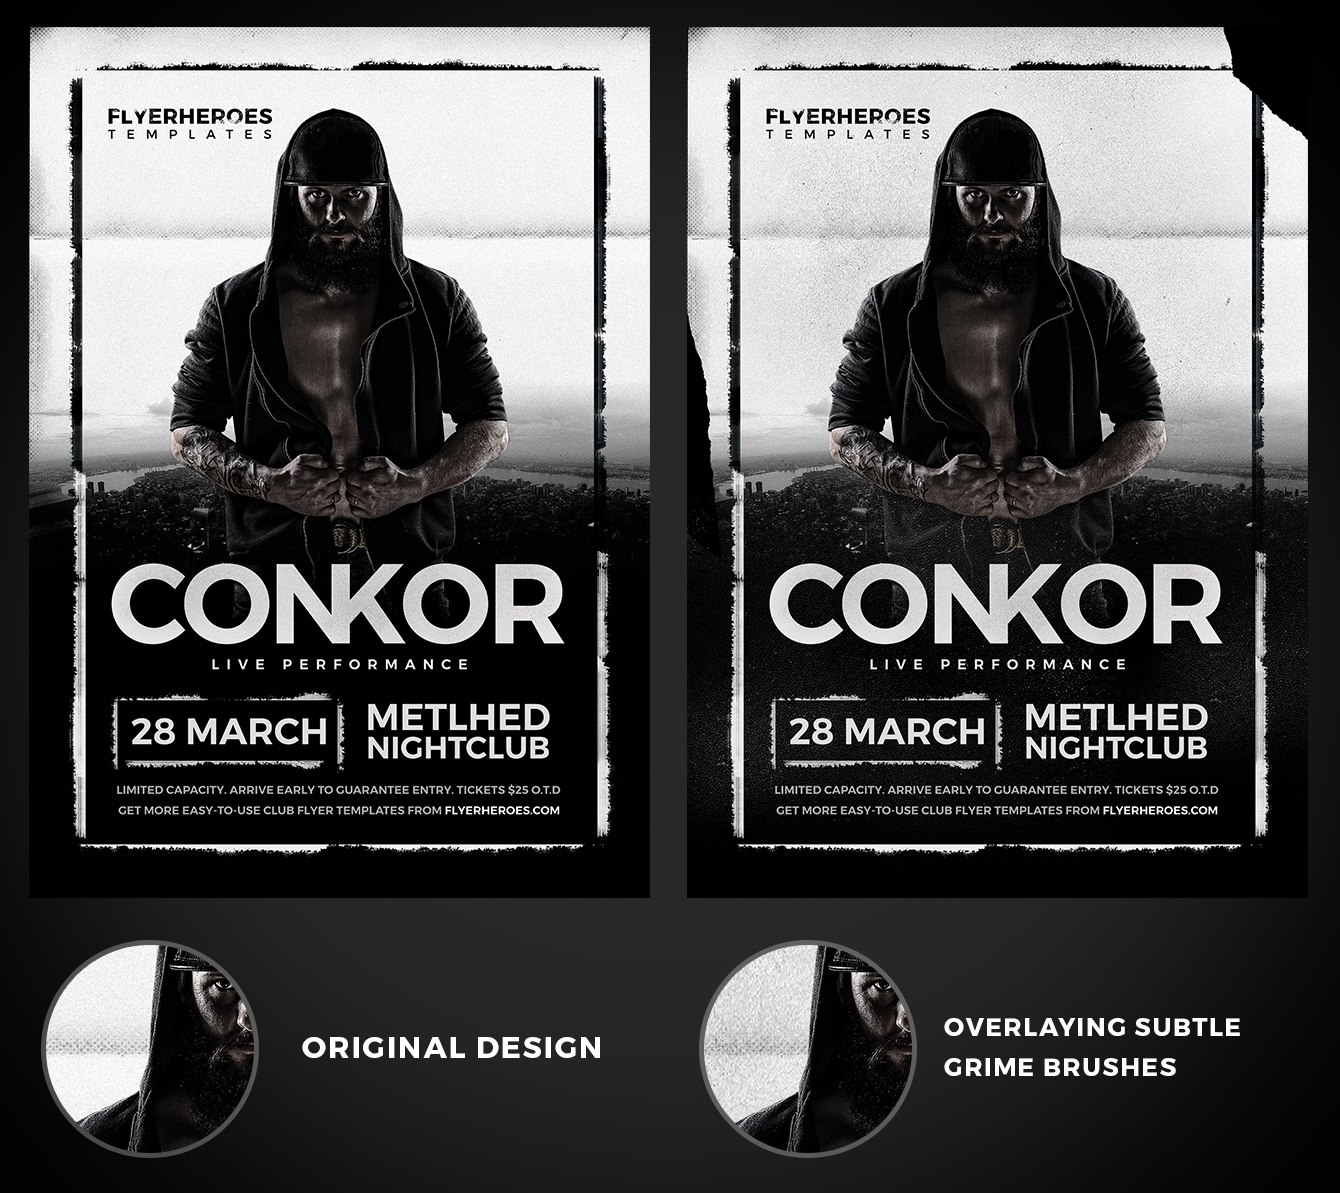 An example of how to overlay grime on flyer designs, using Conkor Flyer Template.